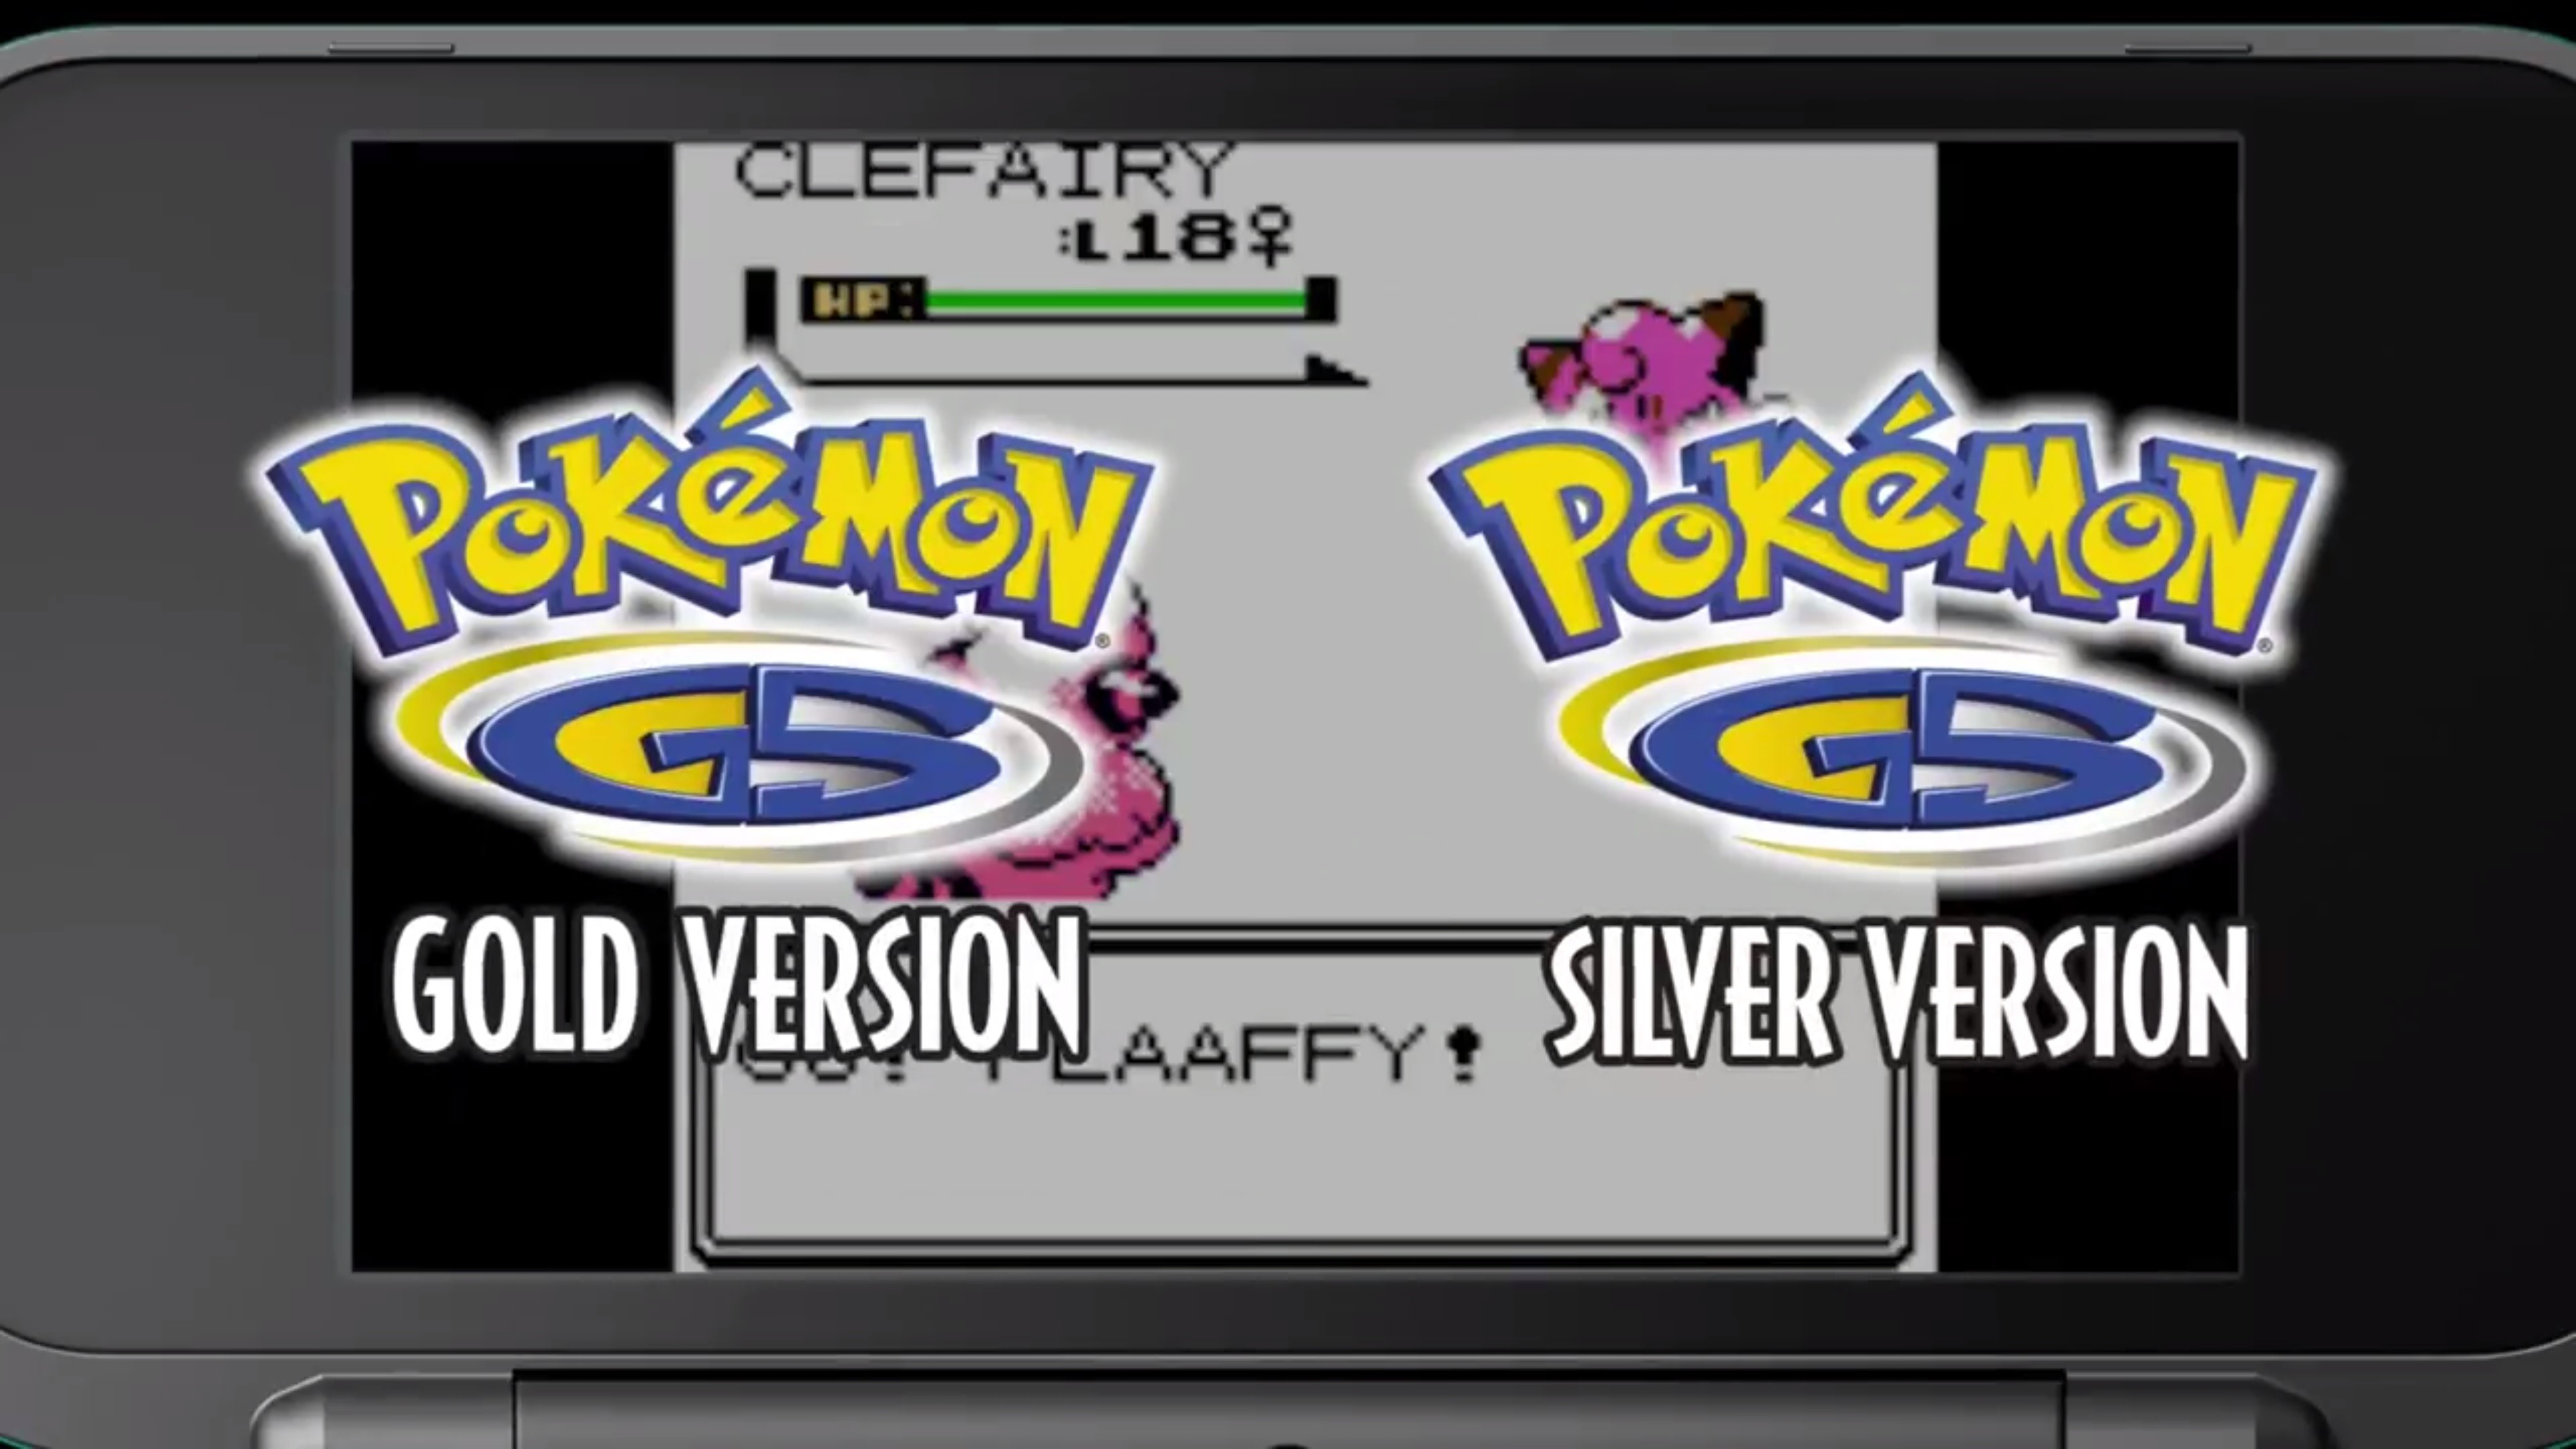 Nintendo just went live with a trailer promoting the launch of Pokemon Gold  and Pokemon Silver on the 3DS Virtual Console later this month. Watch it  below.